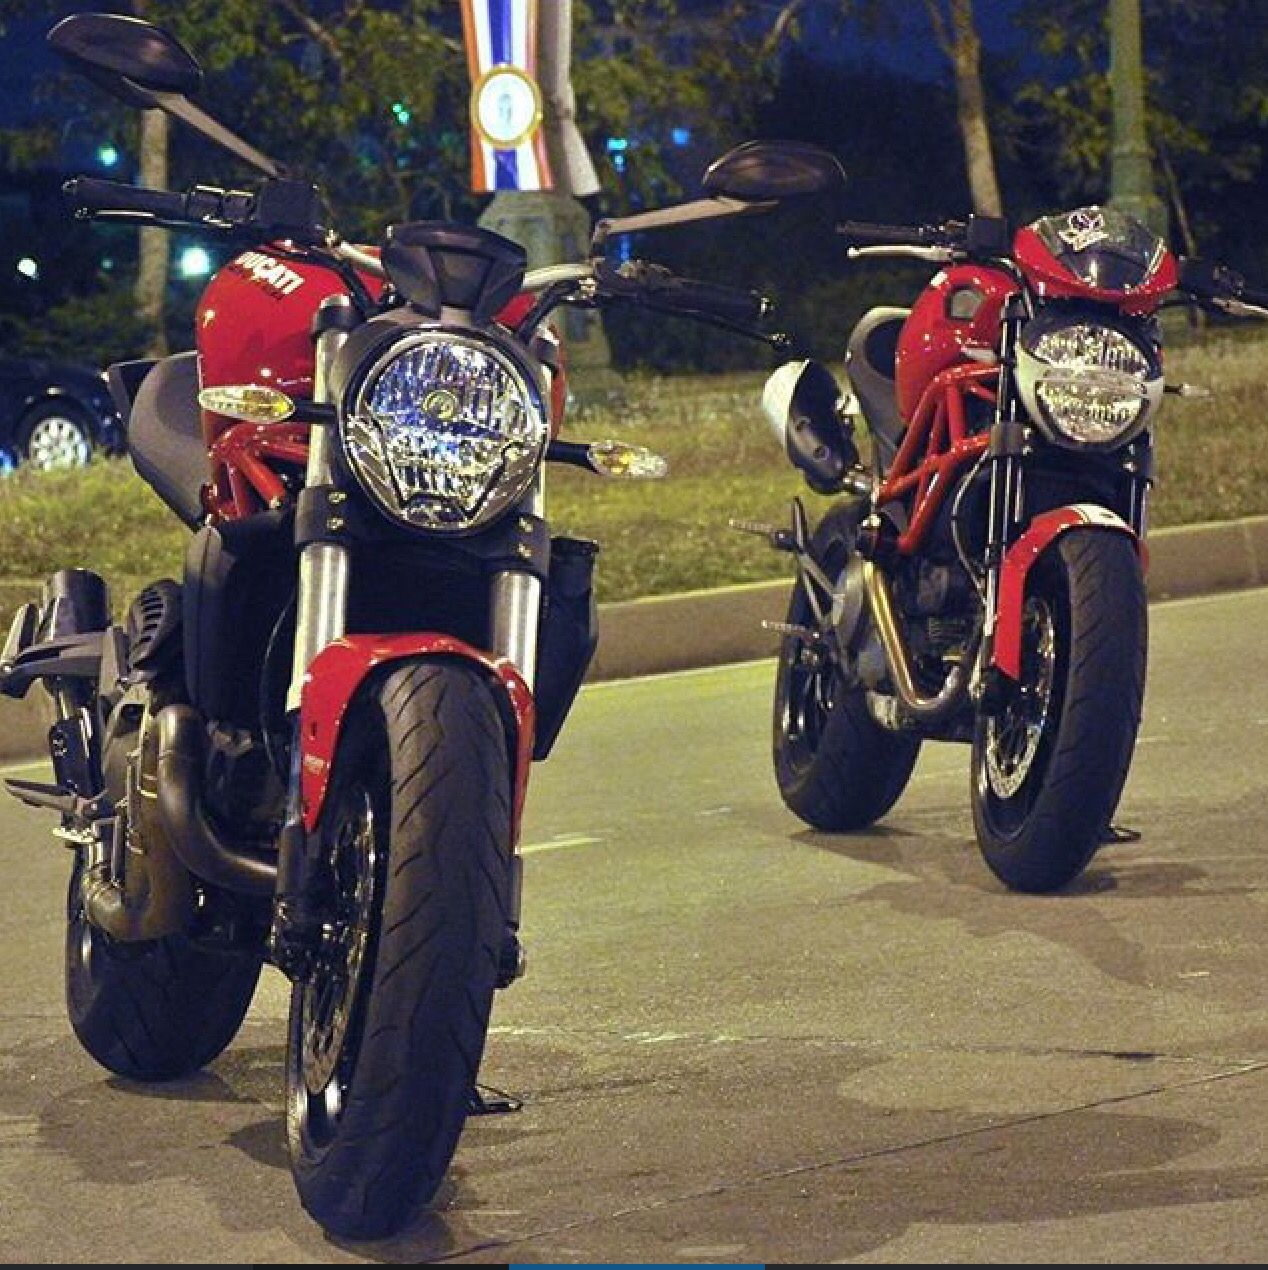 Ducati Monster 821 Vs 796